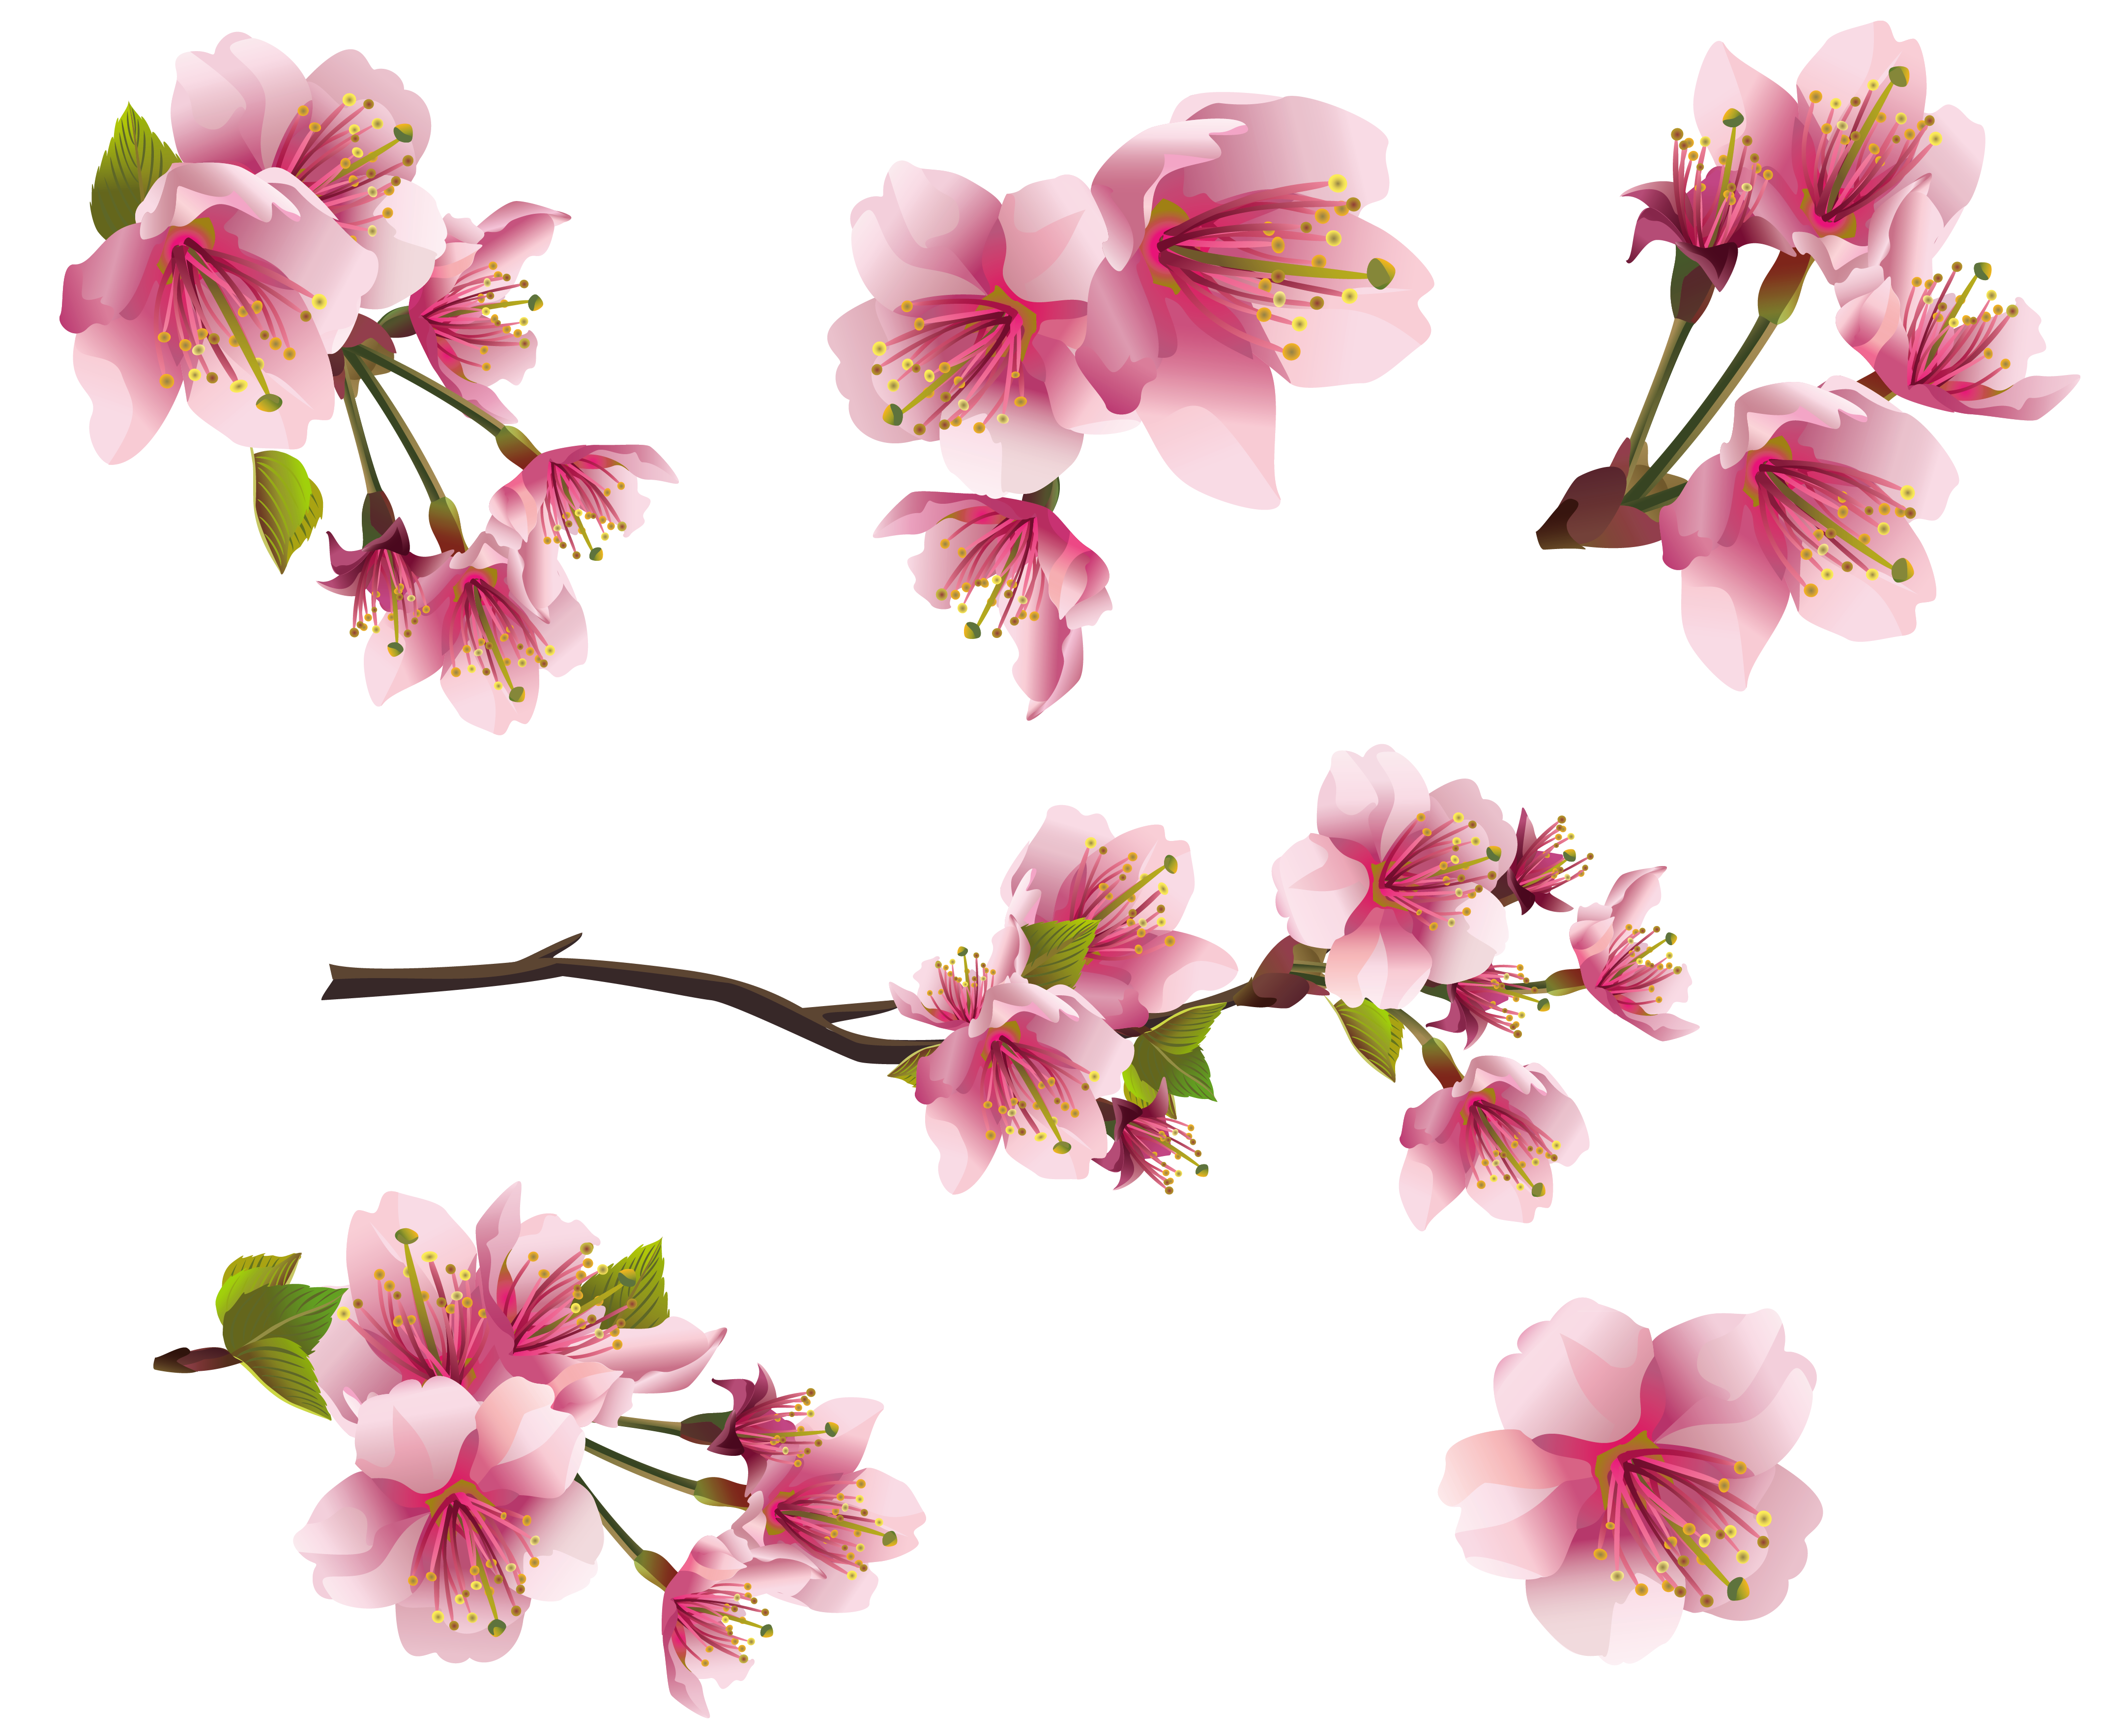 Tiny flowers png transparent tiny flowersg images pluspng pics photos gallery free clipart picture spring png spring pink tiny flowers png mightylinksfo